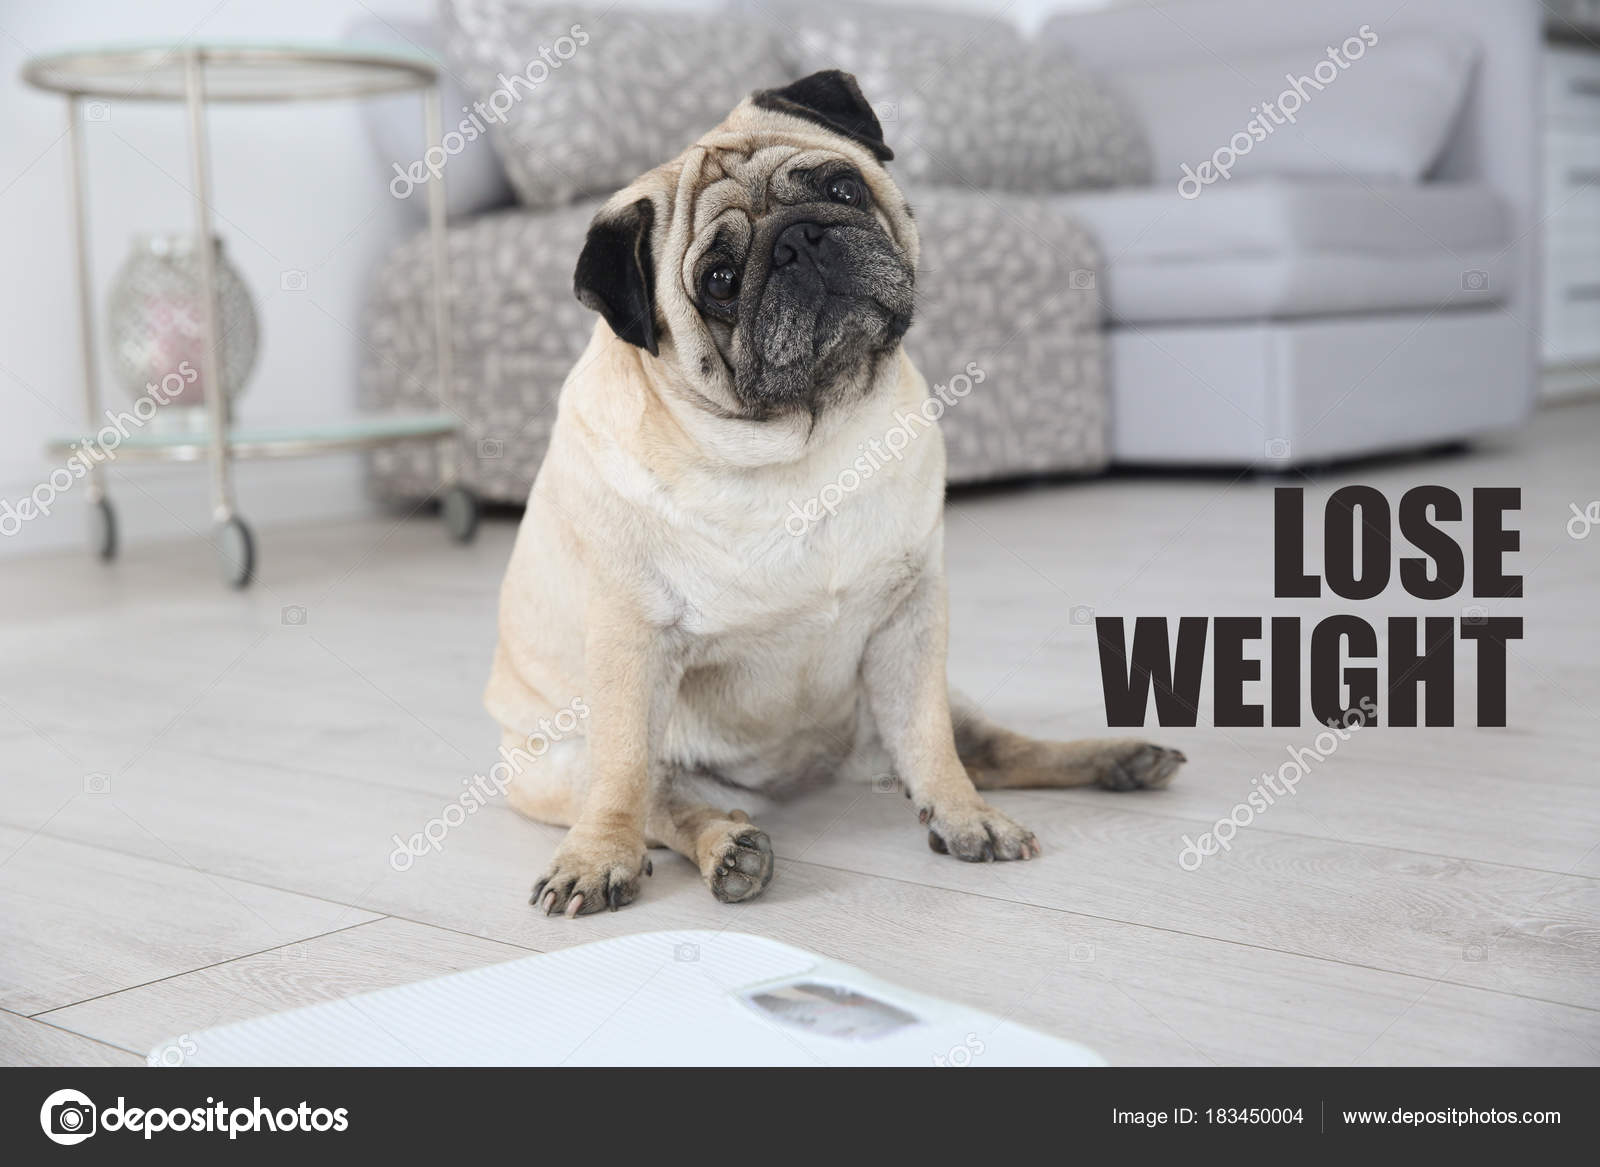 Motivation Quote Lose Weight Cute Overweight Pug Dog Sitting Floor